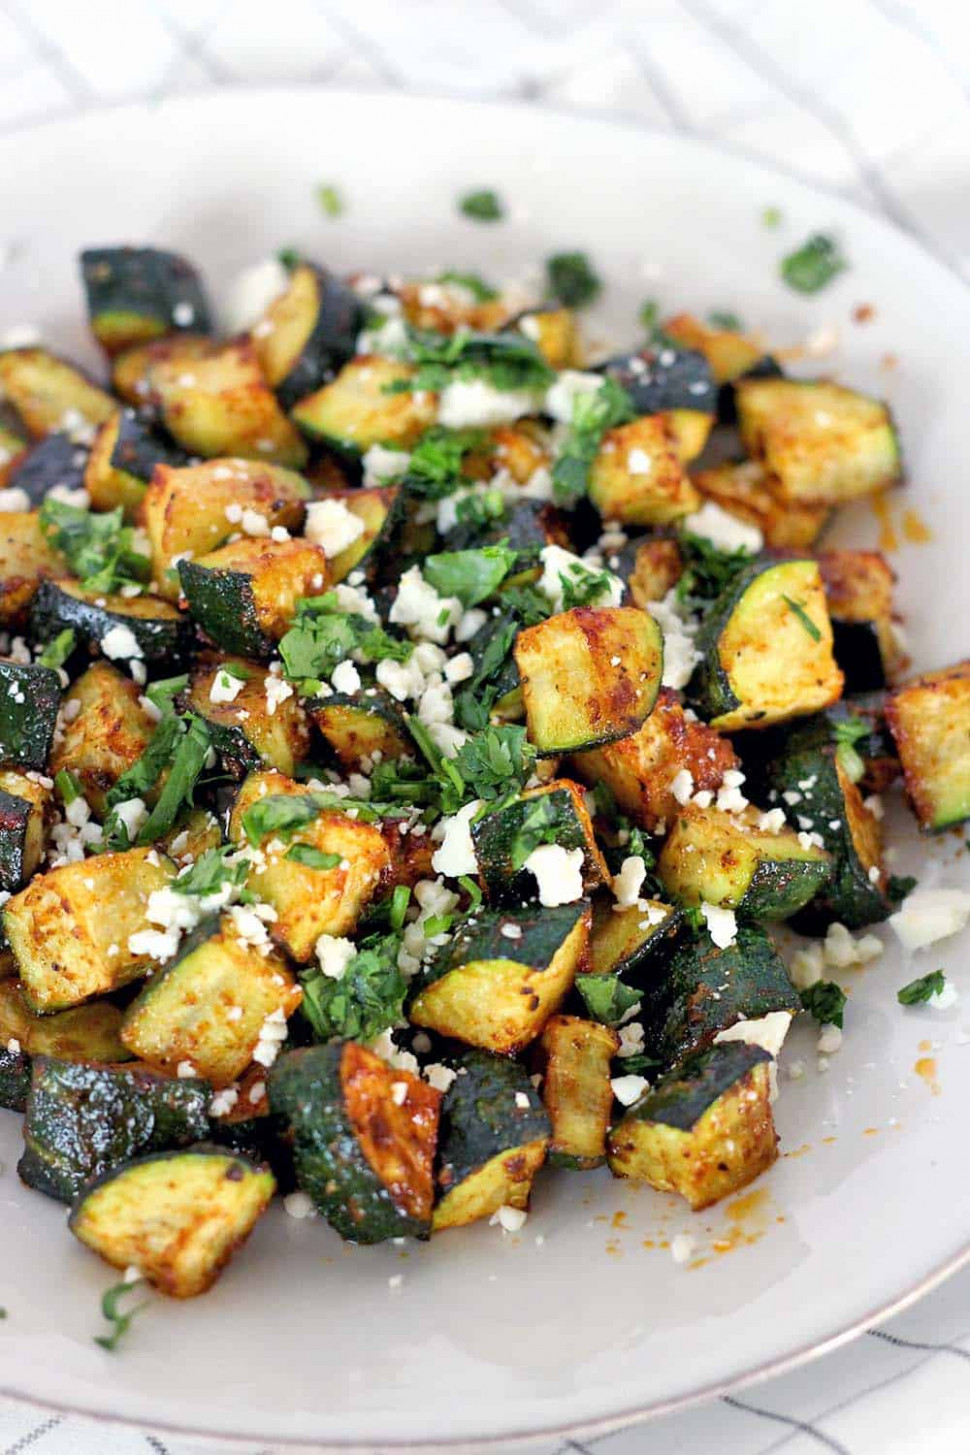 15 Easy Low Carb Vegetable Recipes - Primal Edge Health - Recipes Ideas For Vegetarian